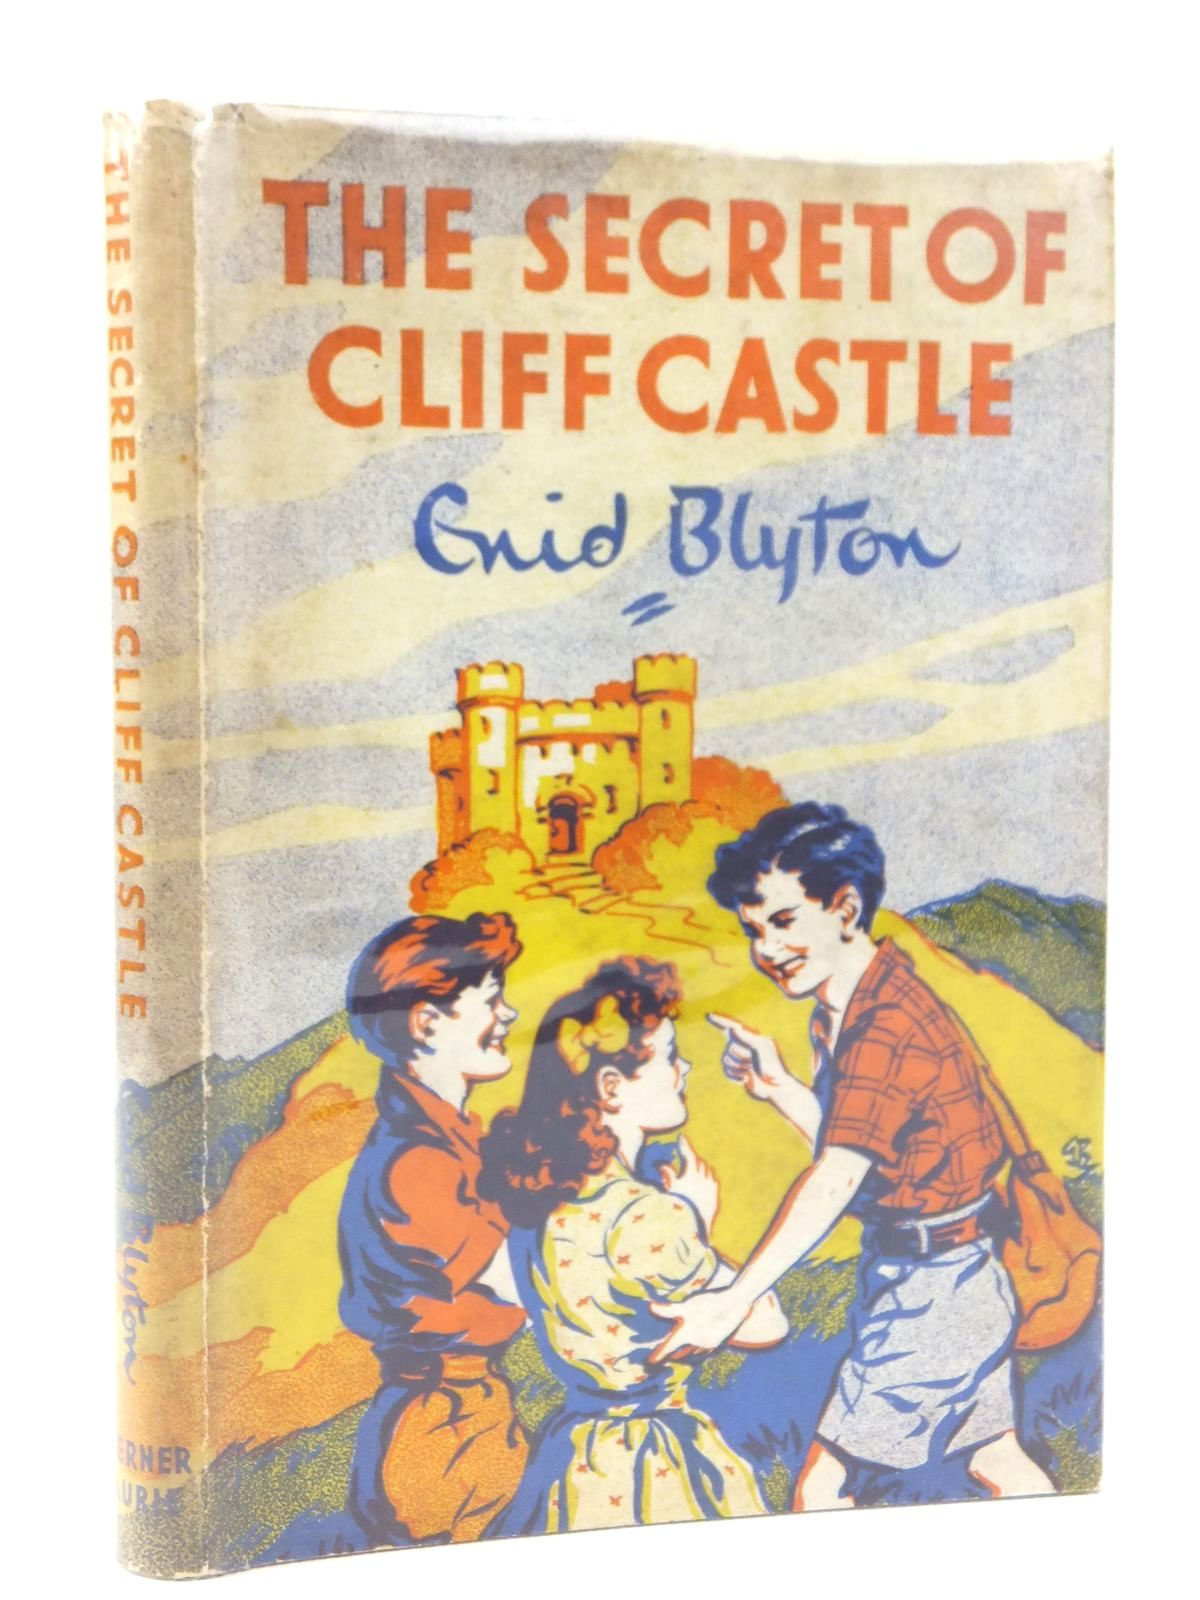 Photo of THE SECRET OF CLIFF CASTLE written by Blyton, Enid illustrated by Brook, G. published by Werner Laurie (STOCK CODE: 1608823)  for sale by Stella & Rose's Books